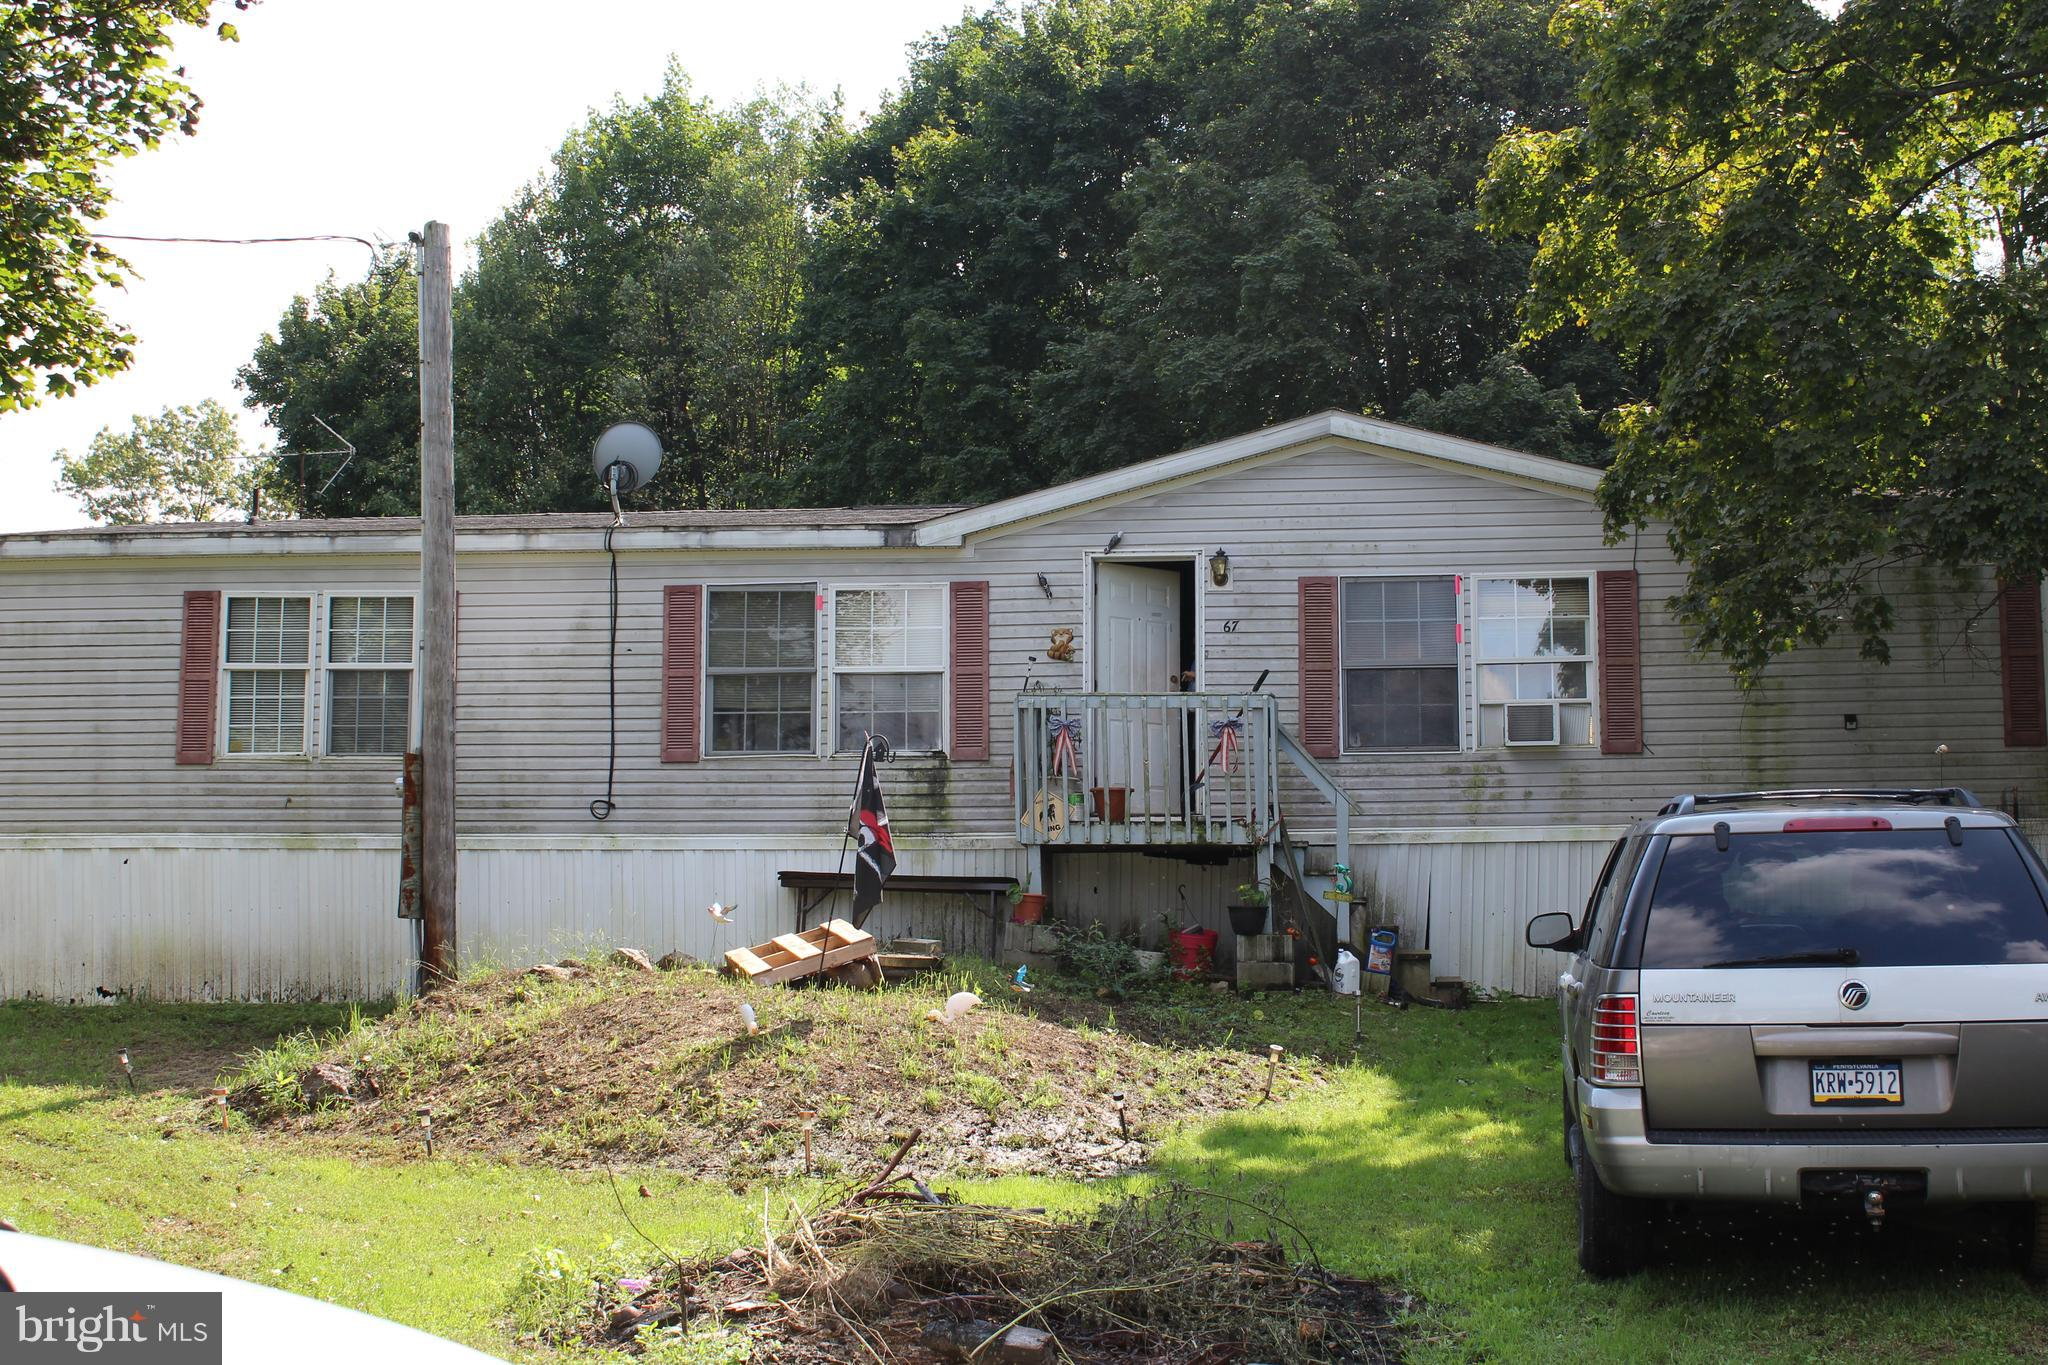 67 MAHANOY RIDGE ROAD, ELLIOTTSBURG, PA 17024